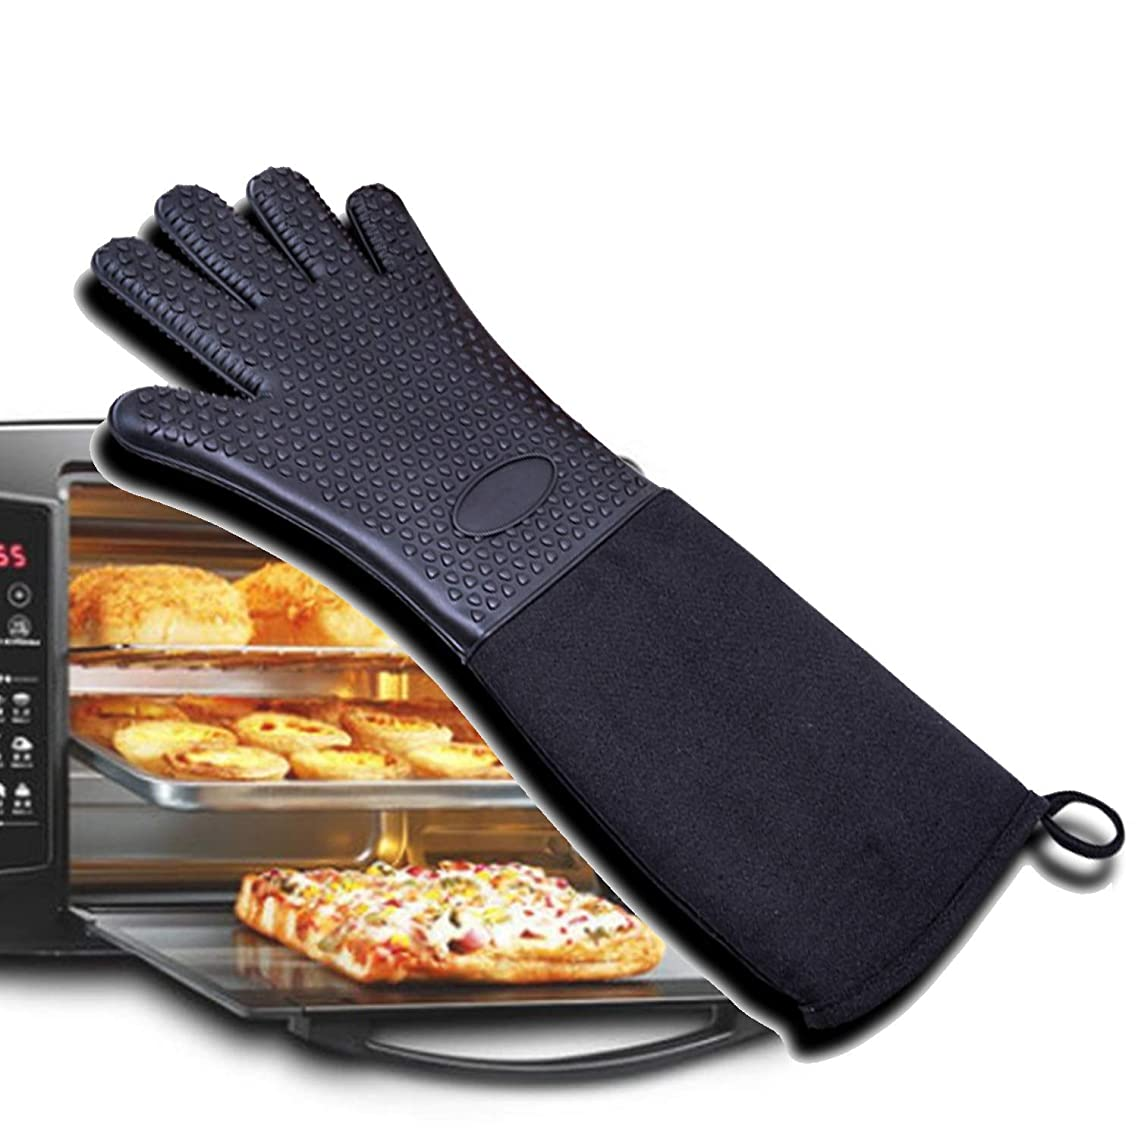 Kitchen gloves Grilling Gloves, Heat Resistant Gloves BBQ Kitchen Silicone Oven Mitts, Waterproof Non-Slip Potholder For Barbecue, Cooking, Baking Household Supplies Gloves